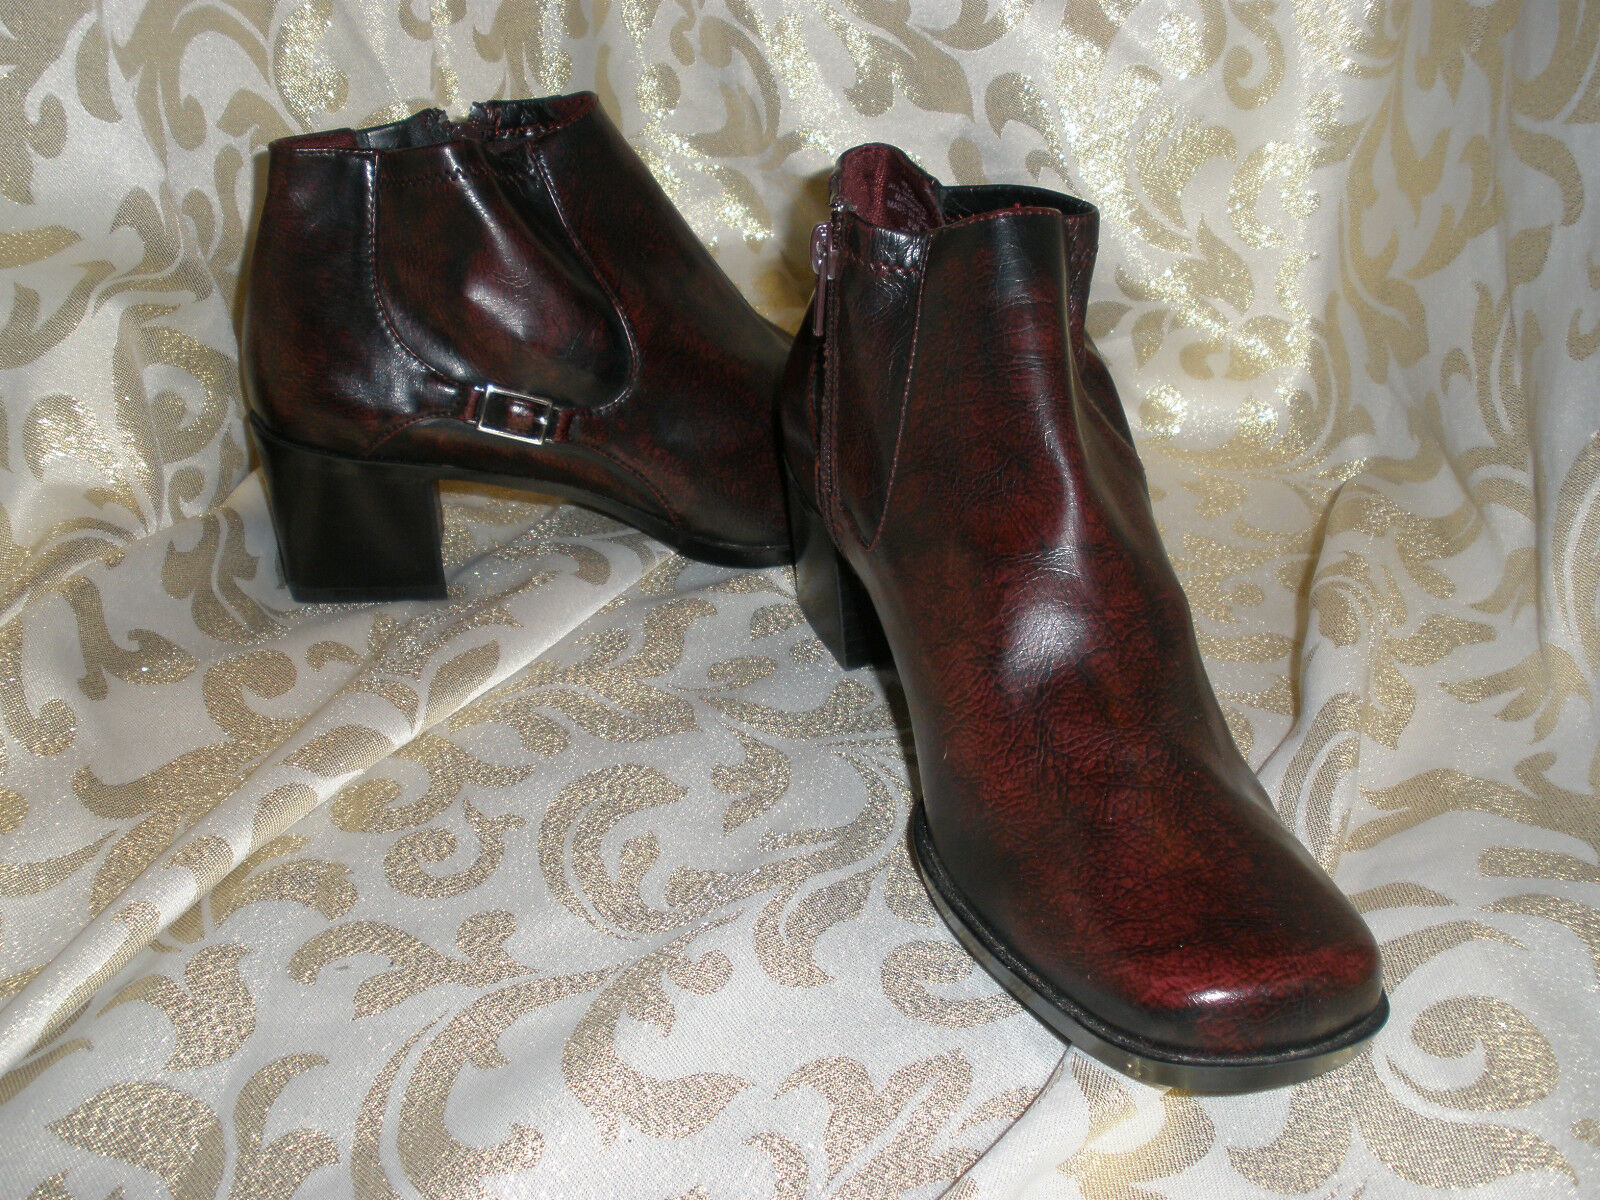 LIZ CLAIBORN BURGUNDY SYNTHETIC ANKLE PANTS BIKER BOOTS BOOTIES SZ: 8.5 M  PAGE